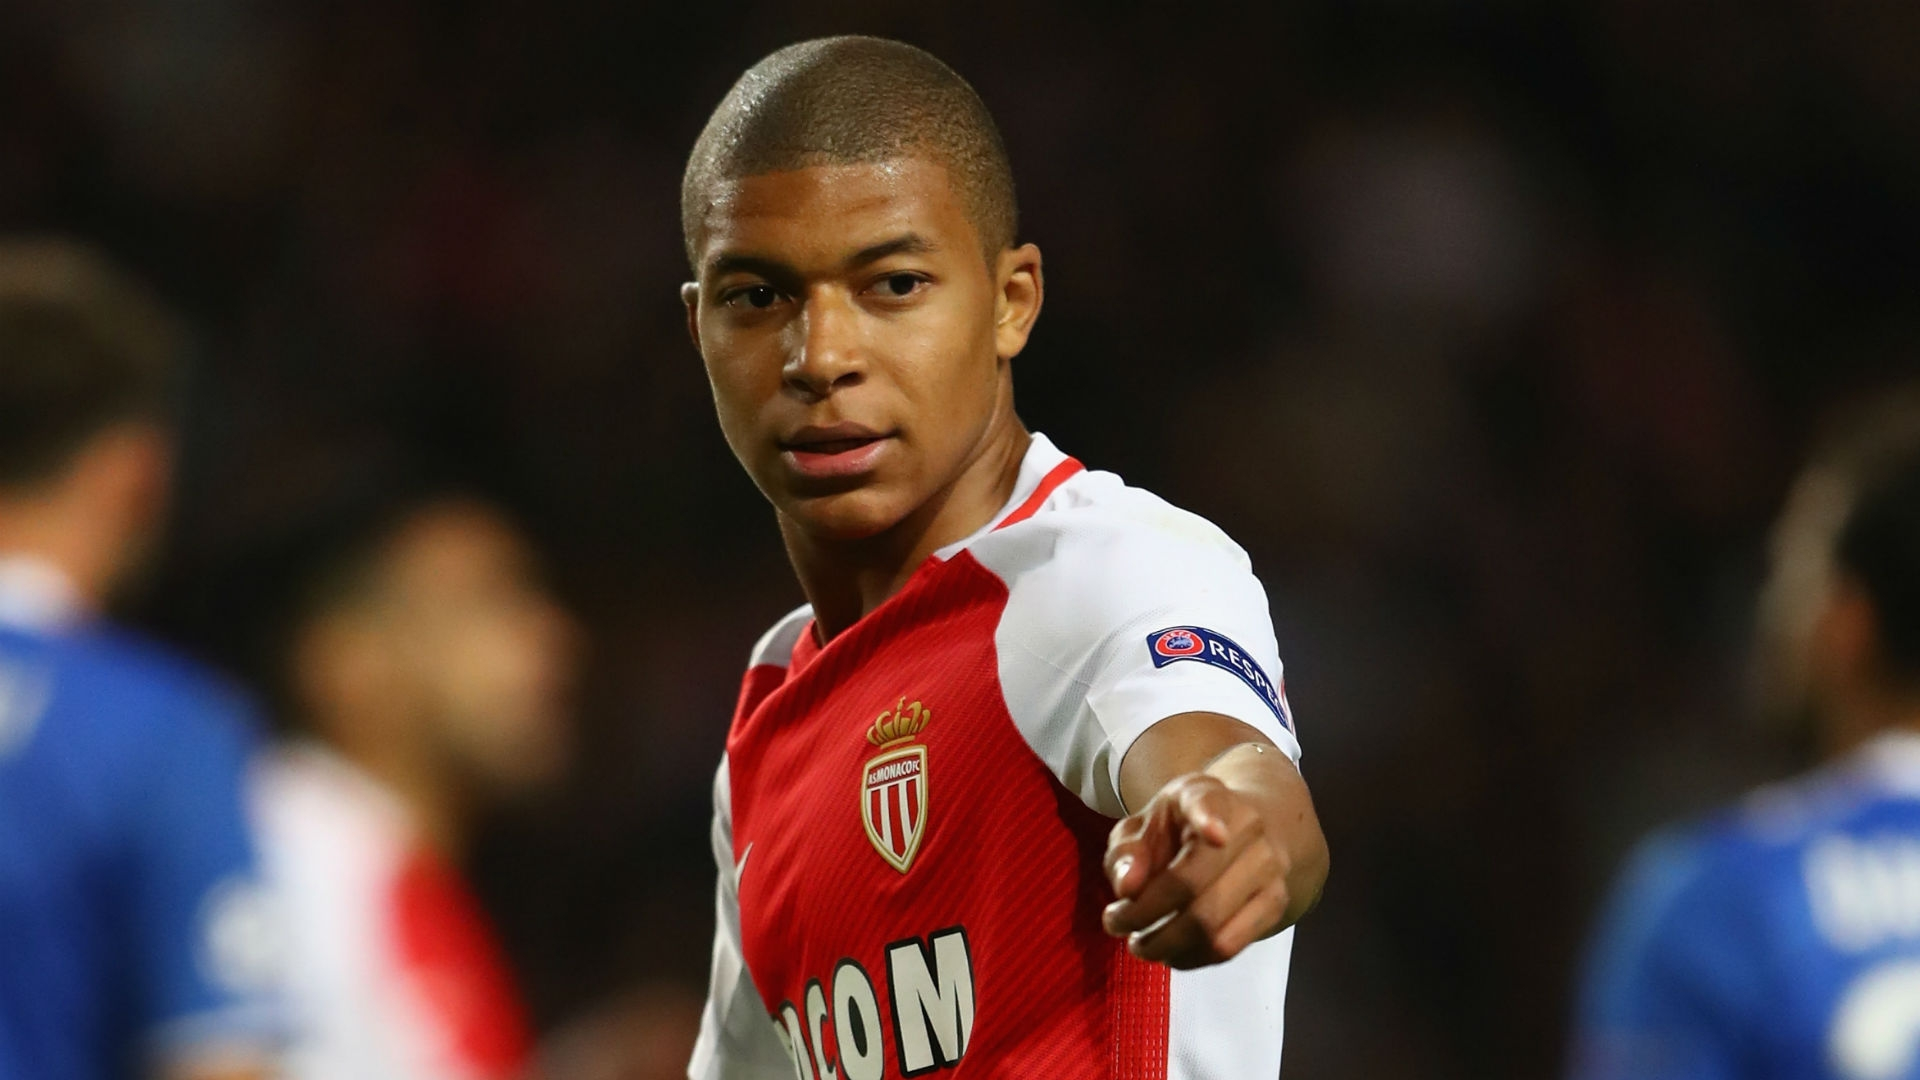 Leaving to join Real Madrid is one thing, but joining PSG, Monaco's top rival in France, is another altogether.